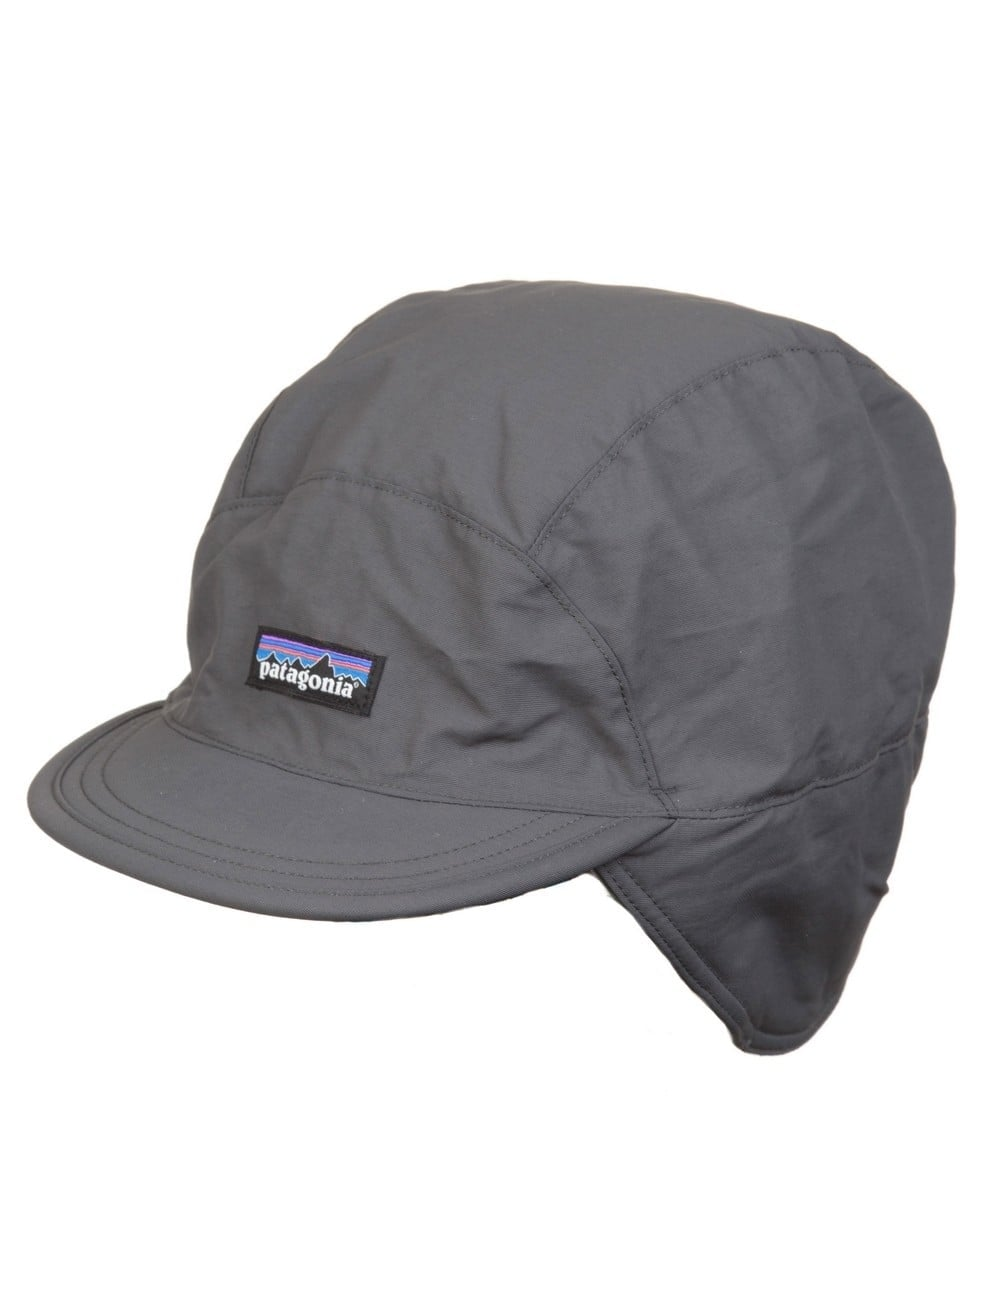 Patagonia Shelled Synchilla Duckbill Cap - Forge Grey - Accessories ... 8d281e2184d